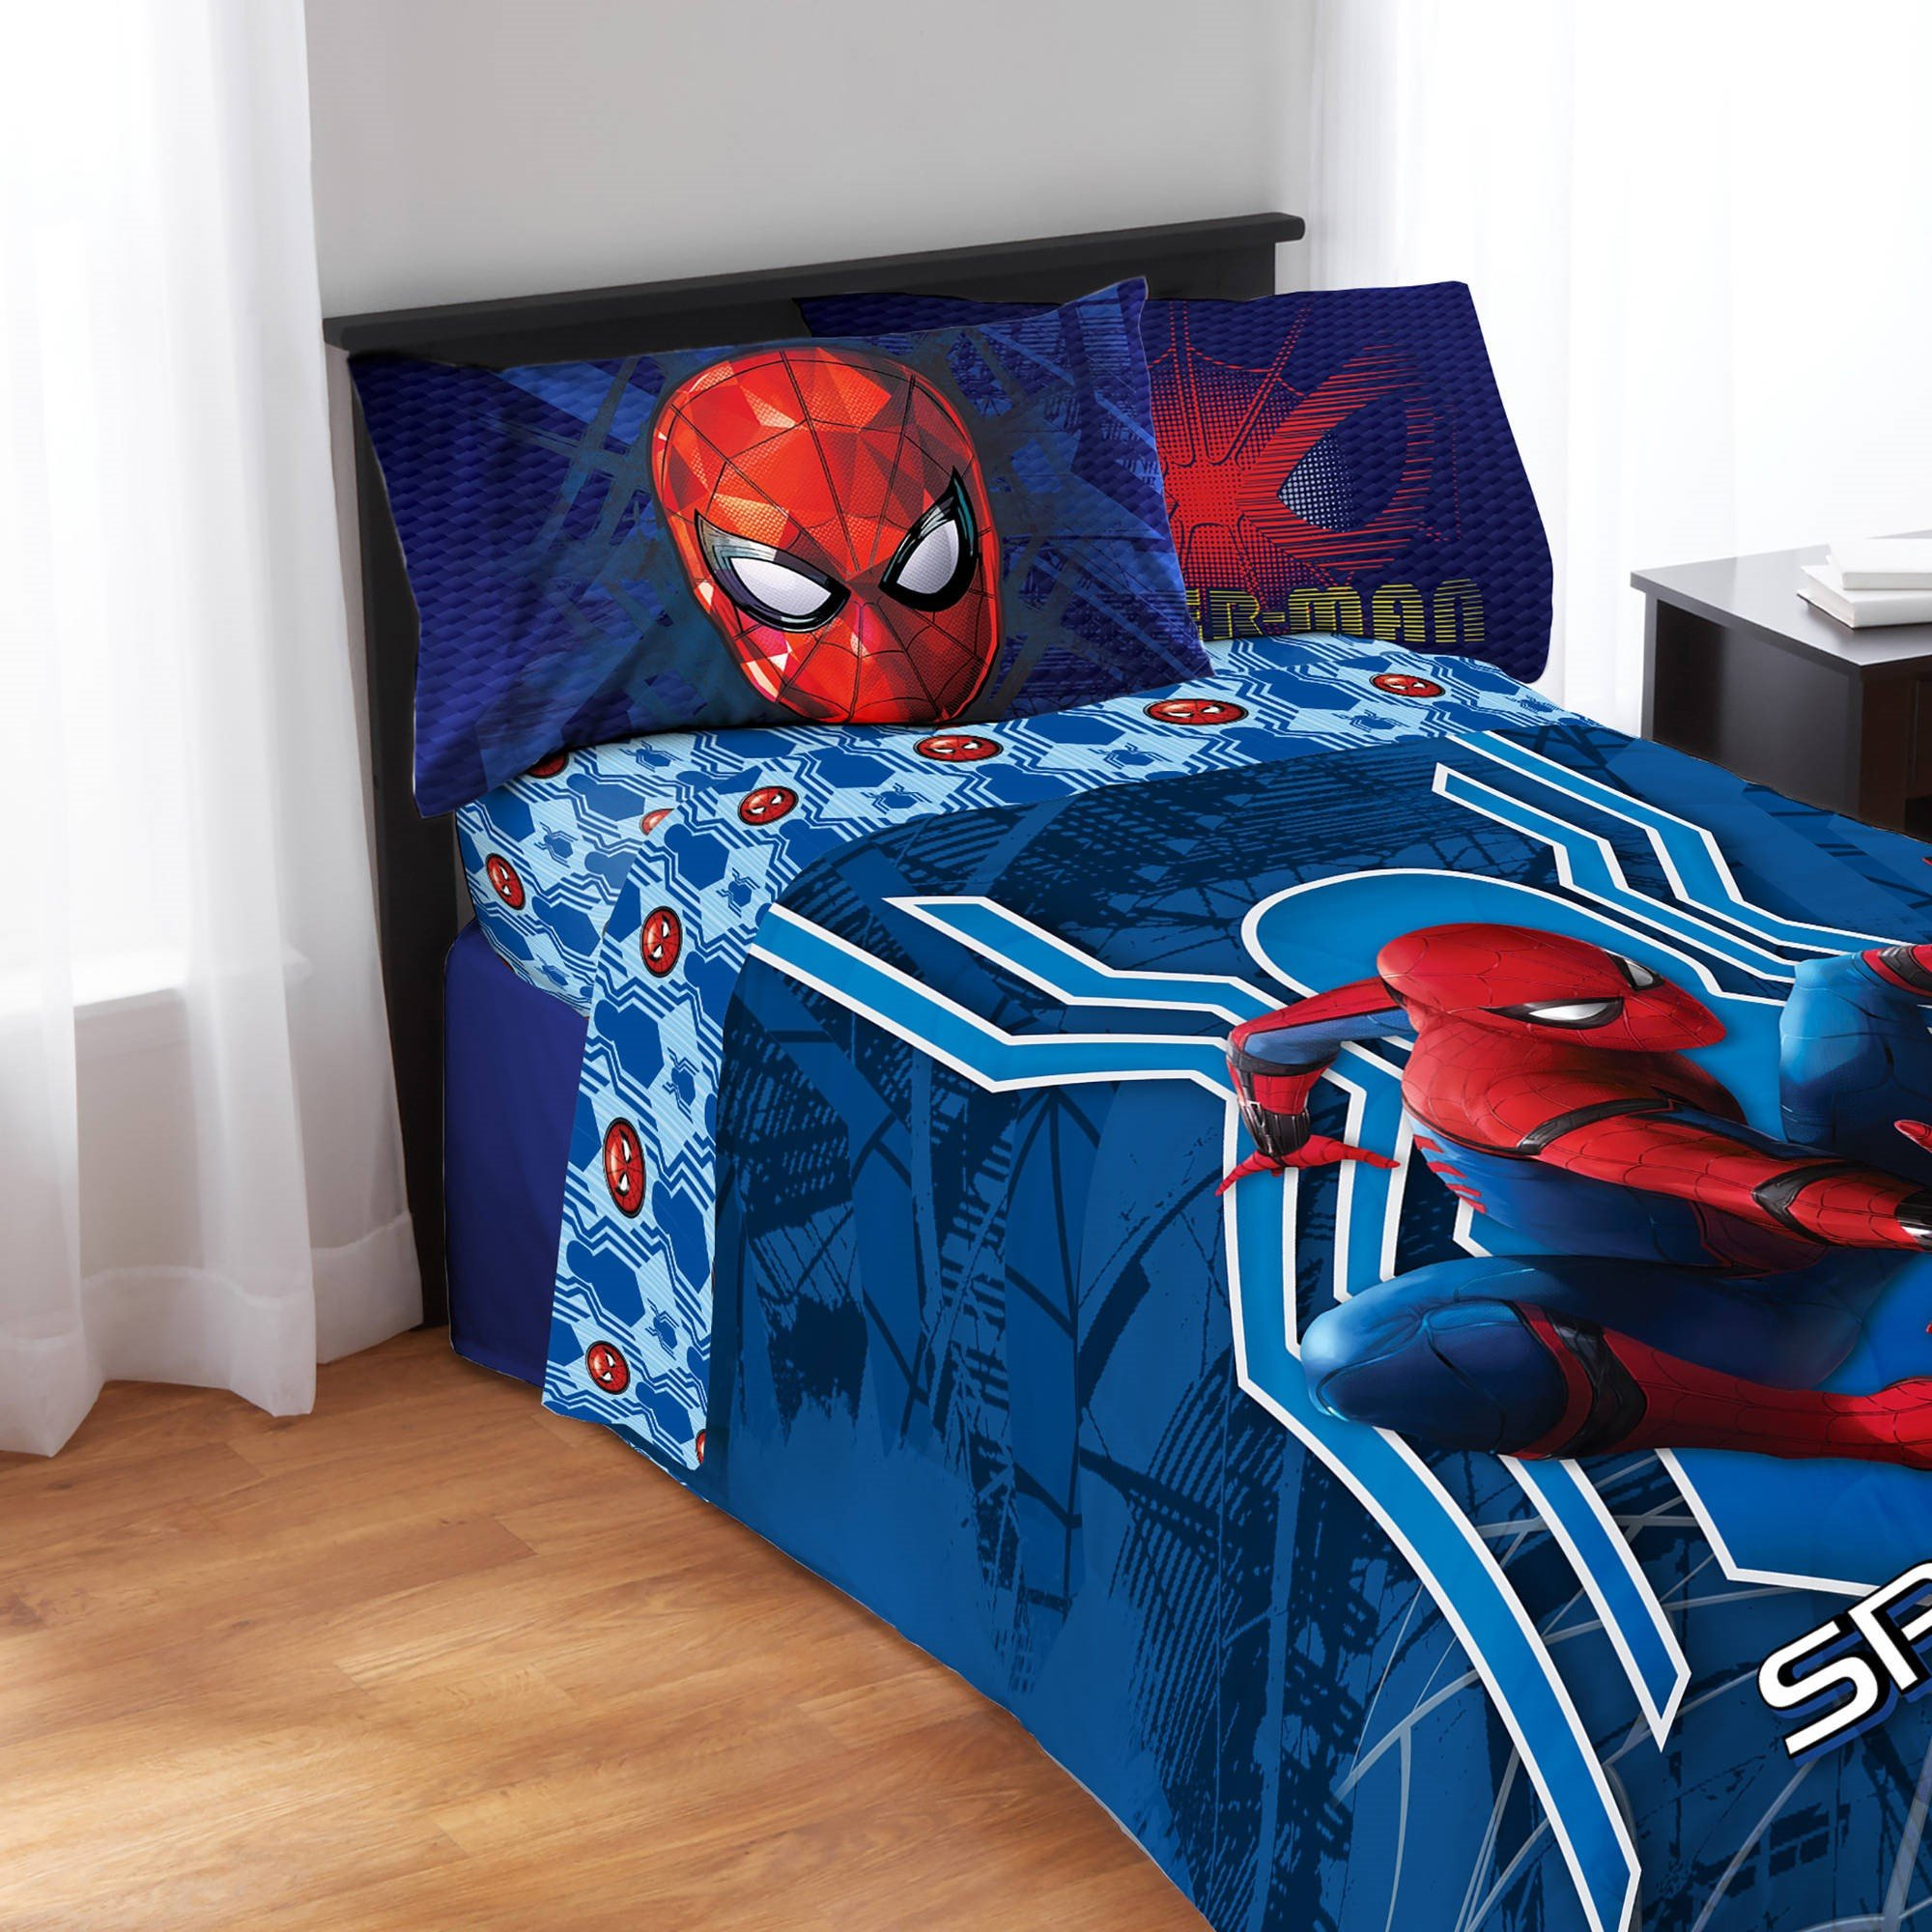 Marvel Spiderman Homecoming 4 Piece Full Sheet Set by CRB